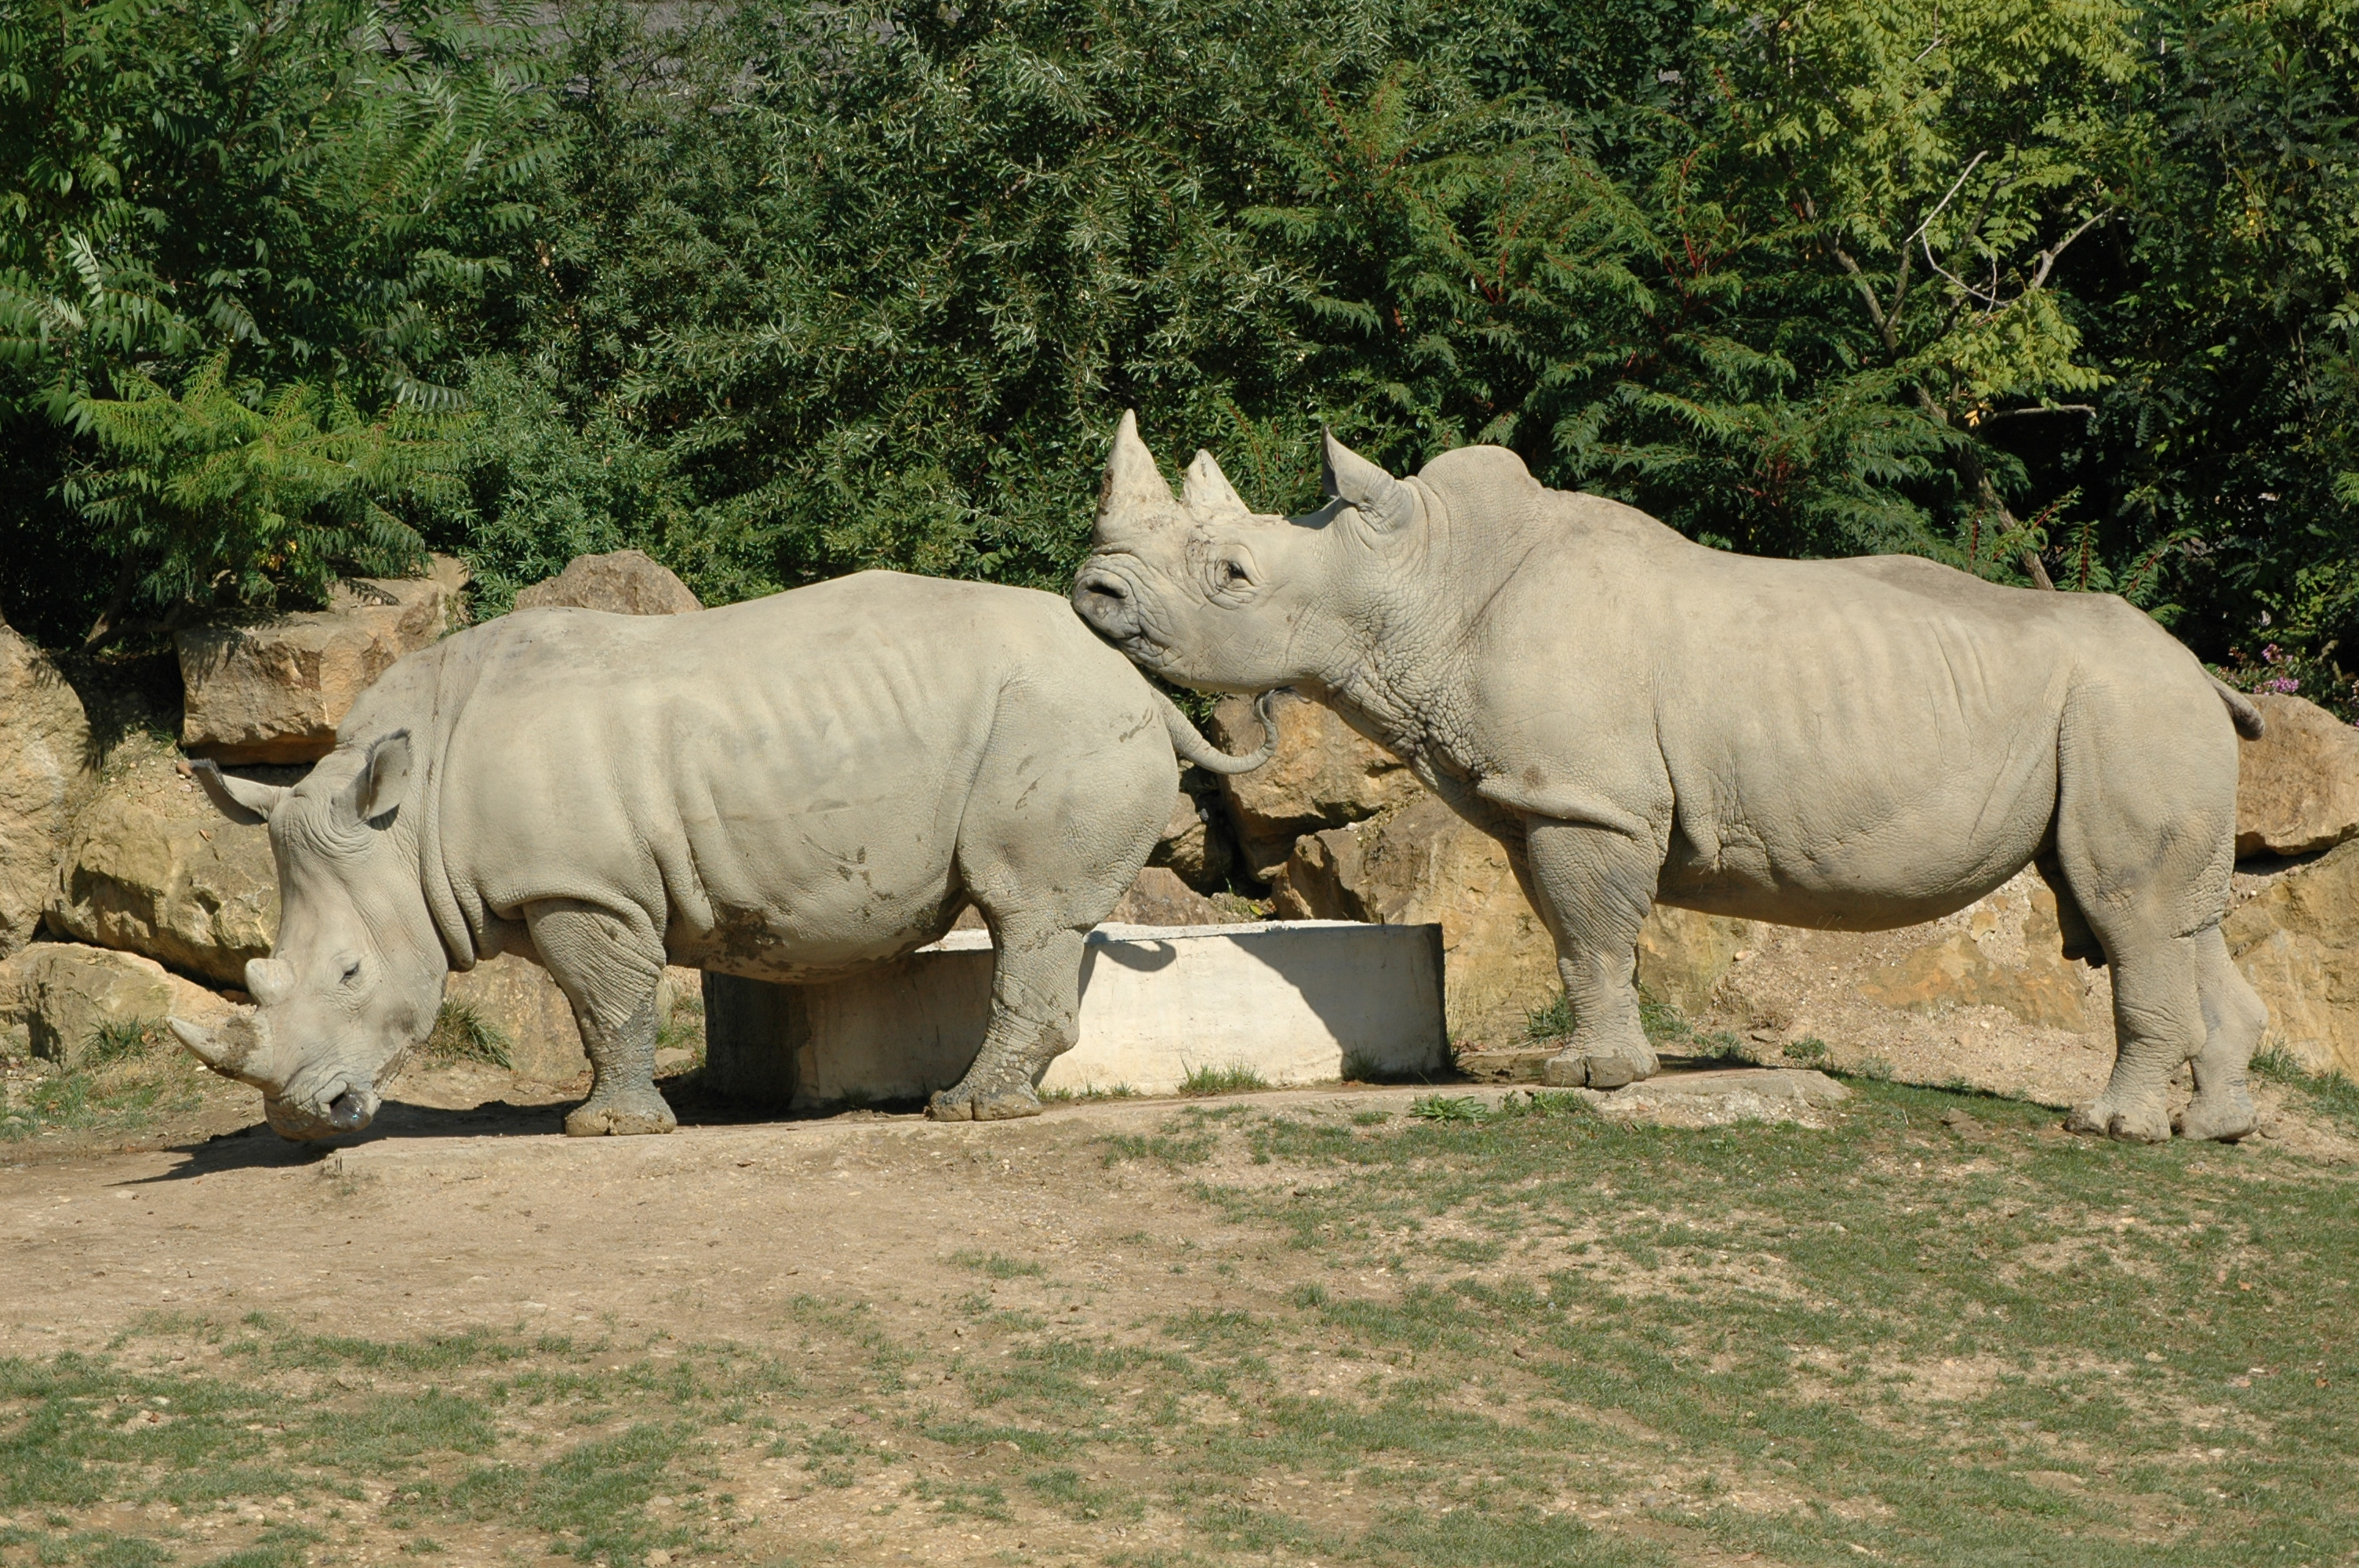 http://upload.wikimedia.org/wikipedia/commons/1/1b/DEUX_RHINOCEROS_0372.JPG